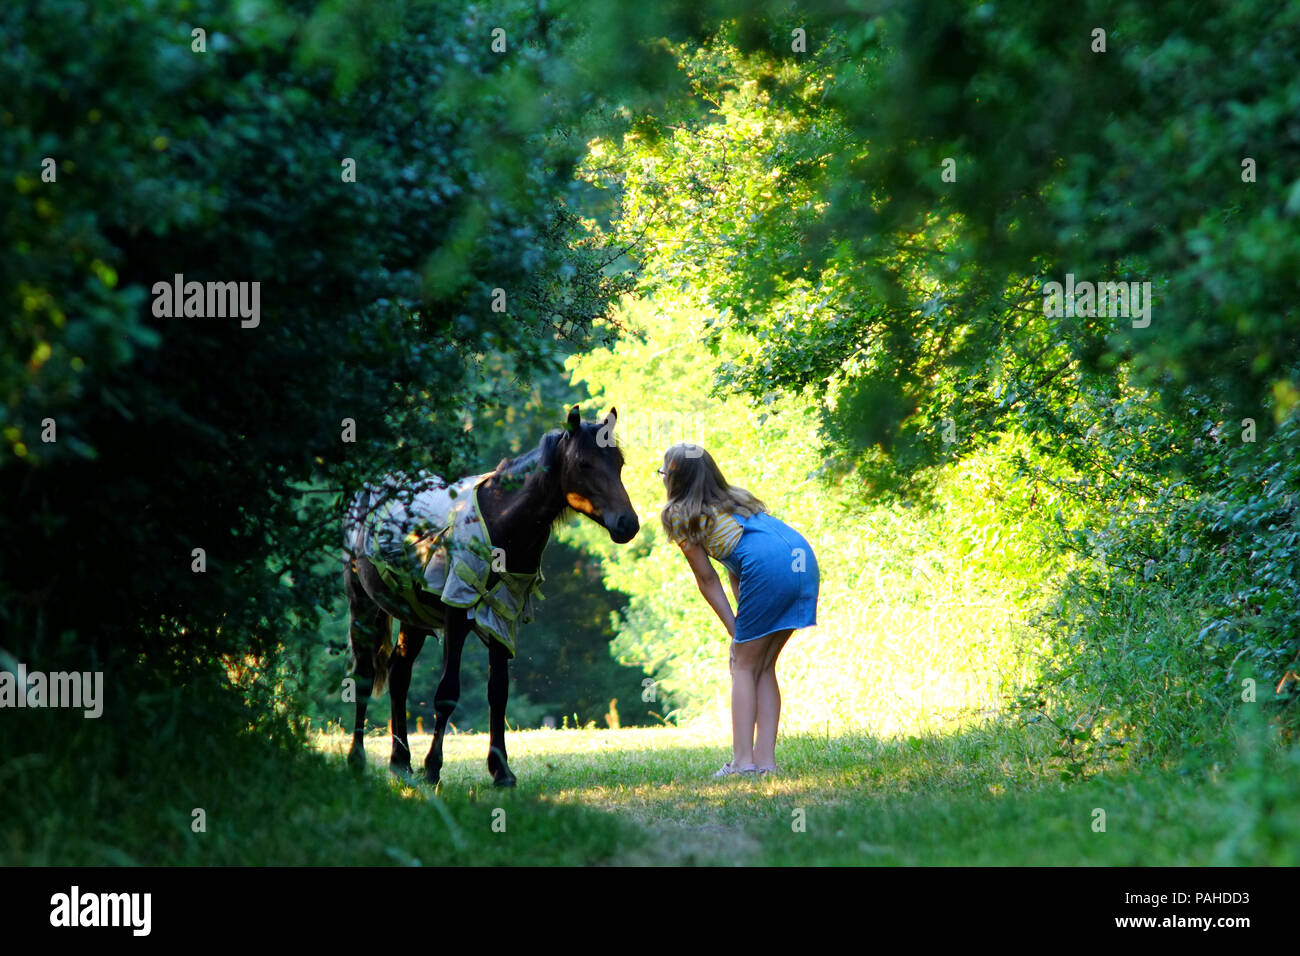 young girl talking to a small pony in the countryside. - Stock Image